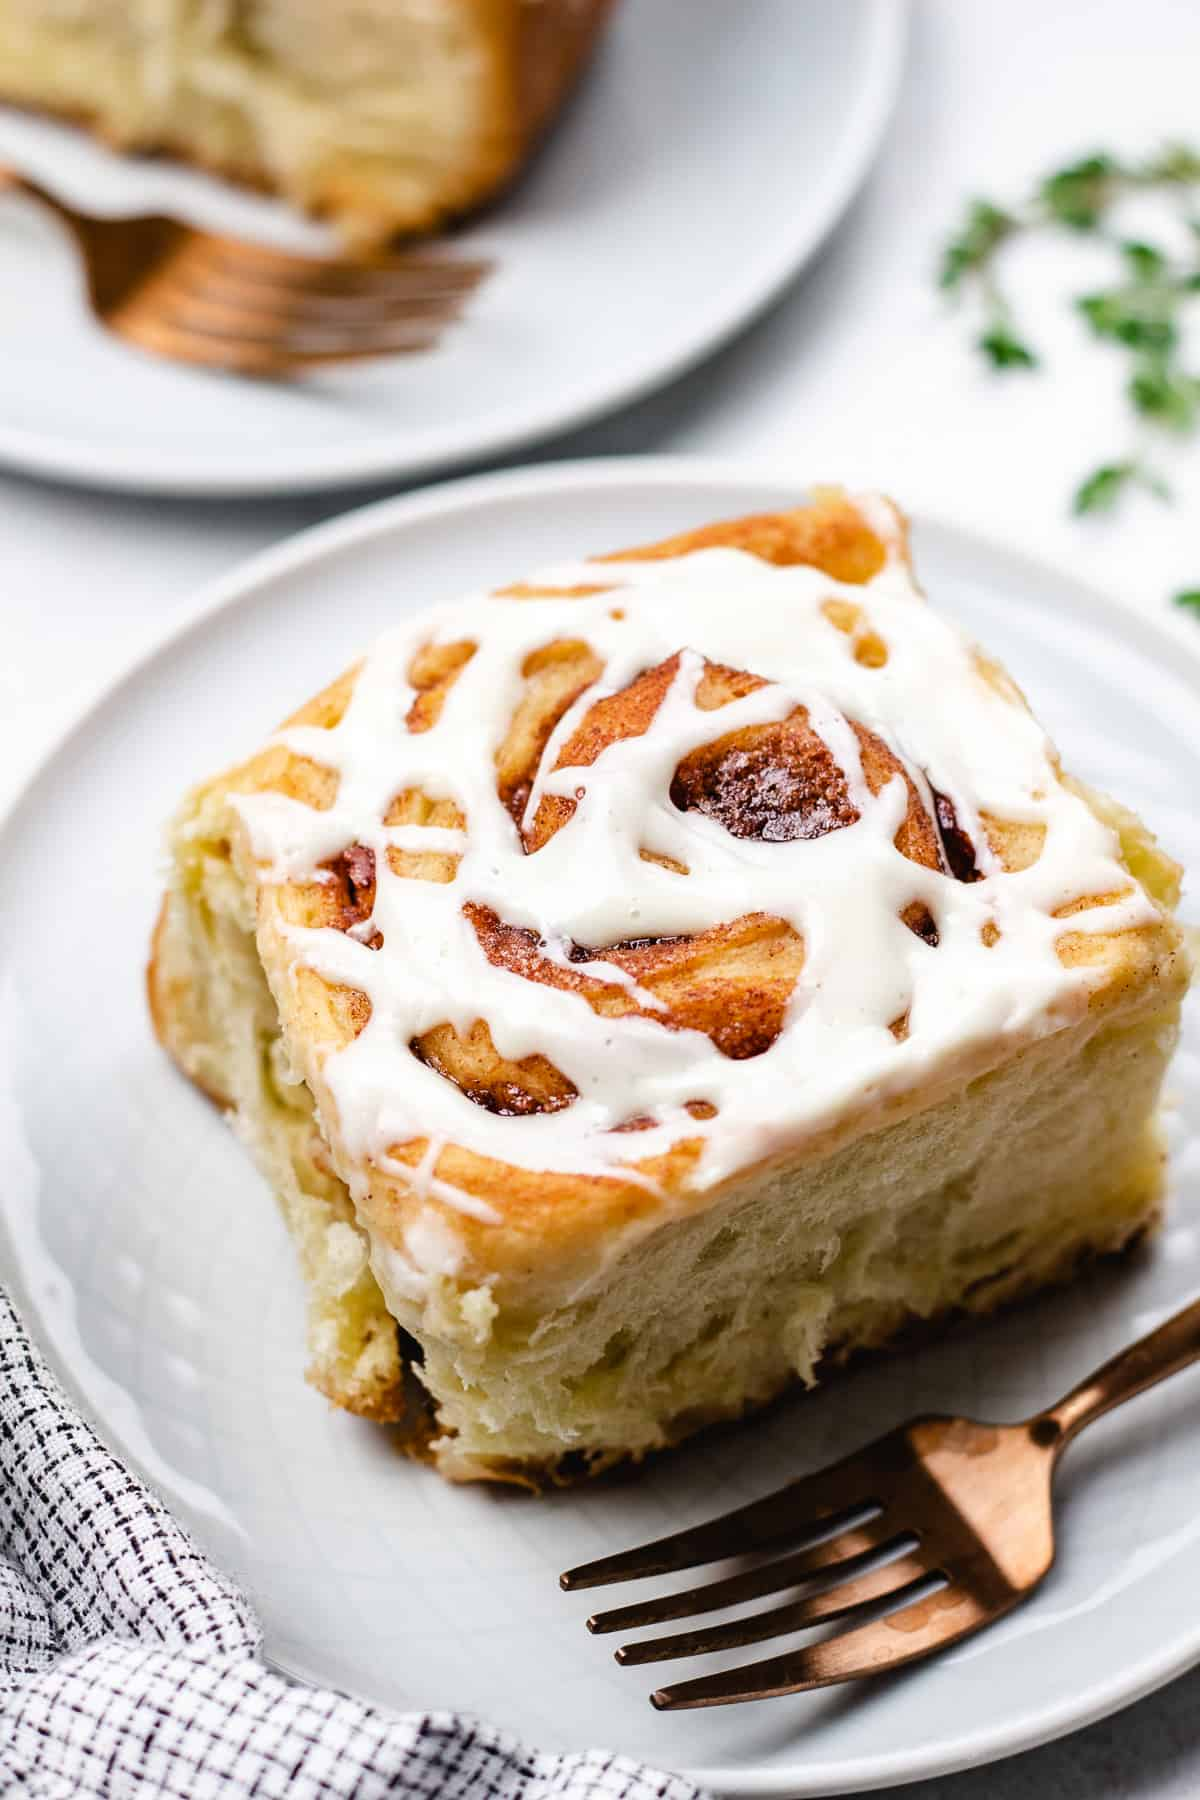 Cinnamon roll with glaze on a grey plate with a fork.